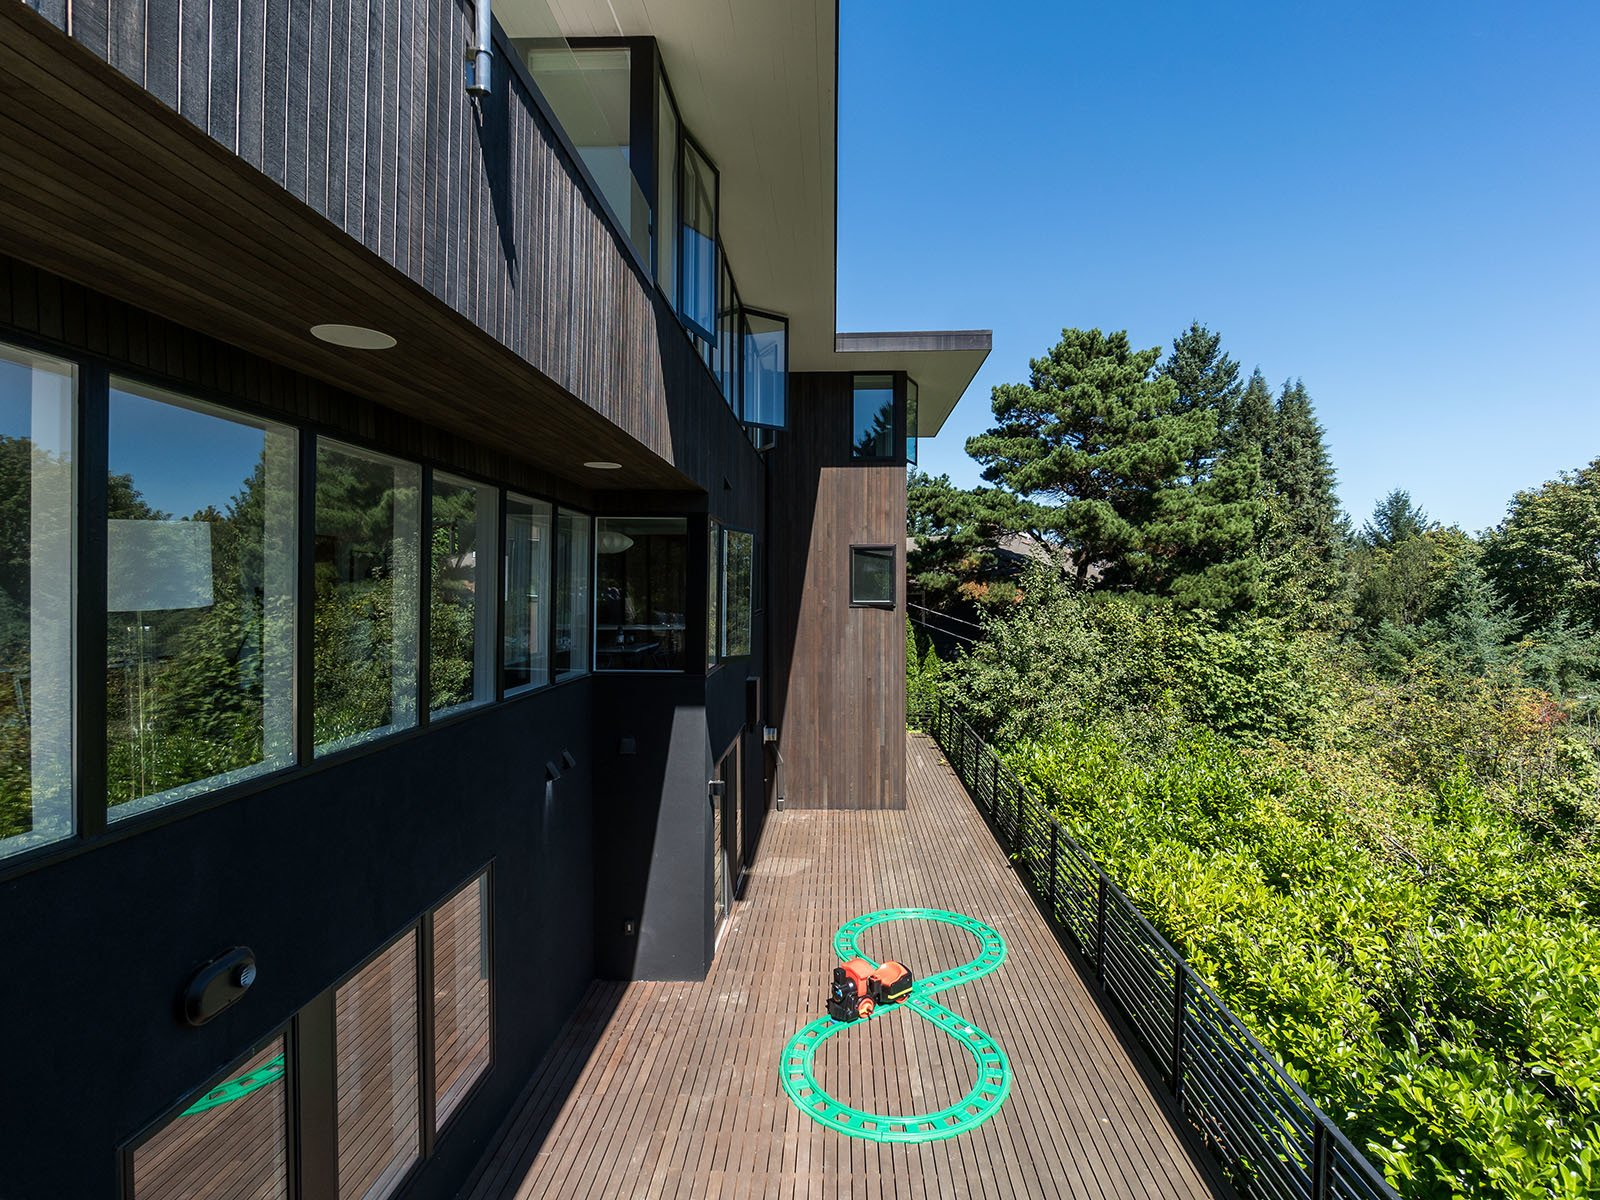 Outdoor, Wood Patio, Porch, Deck, Metal Fences, Wall, Hanging Lighting, Side Yard, Horizontal Fences, Wall, Small Patio, Porch, Deck, and Trees The rear of the house resembles the feeling of a tree house, suspended high up in the trees blending indoors with outdoors.   Photo 20 of 20 in An Iconic Portland Home With Sweeping Mountain Views Asks $1.75M